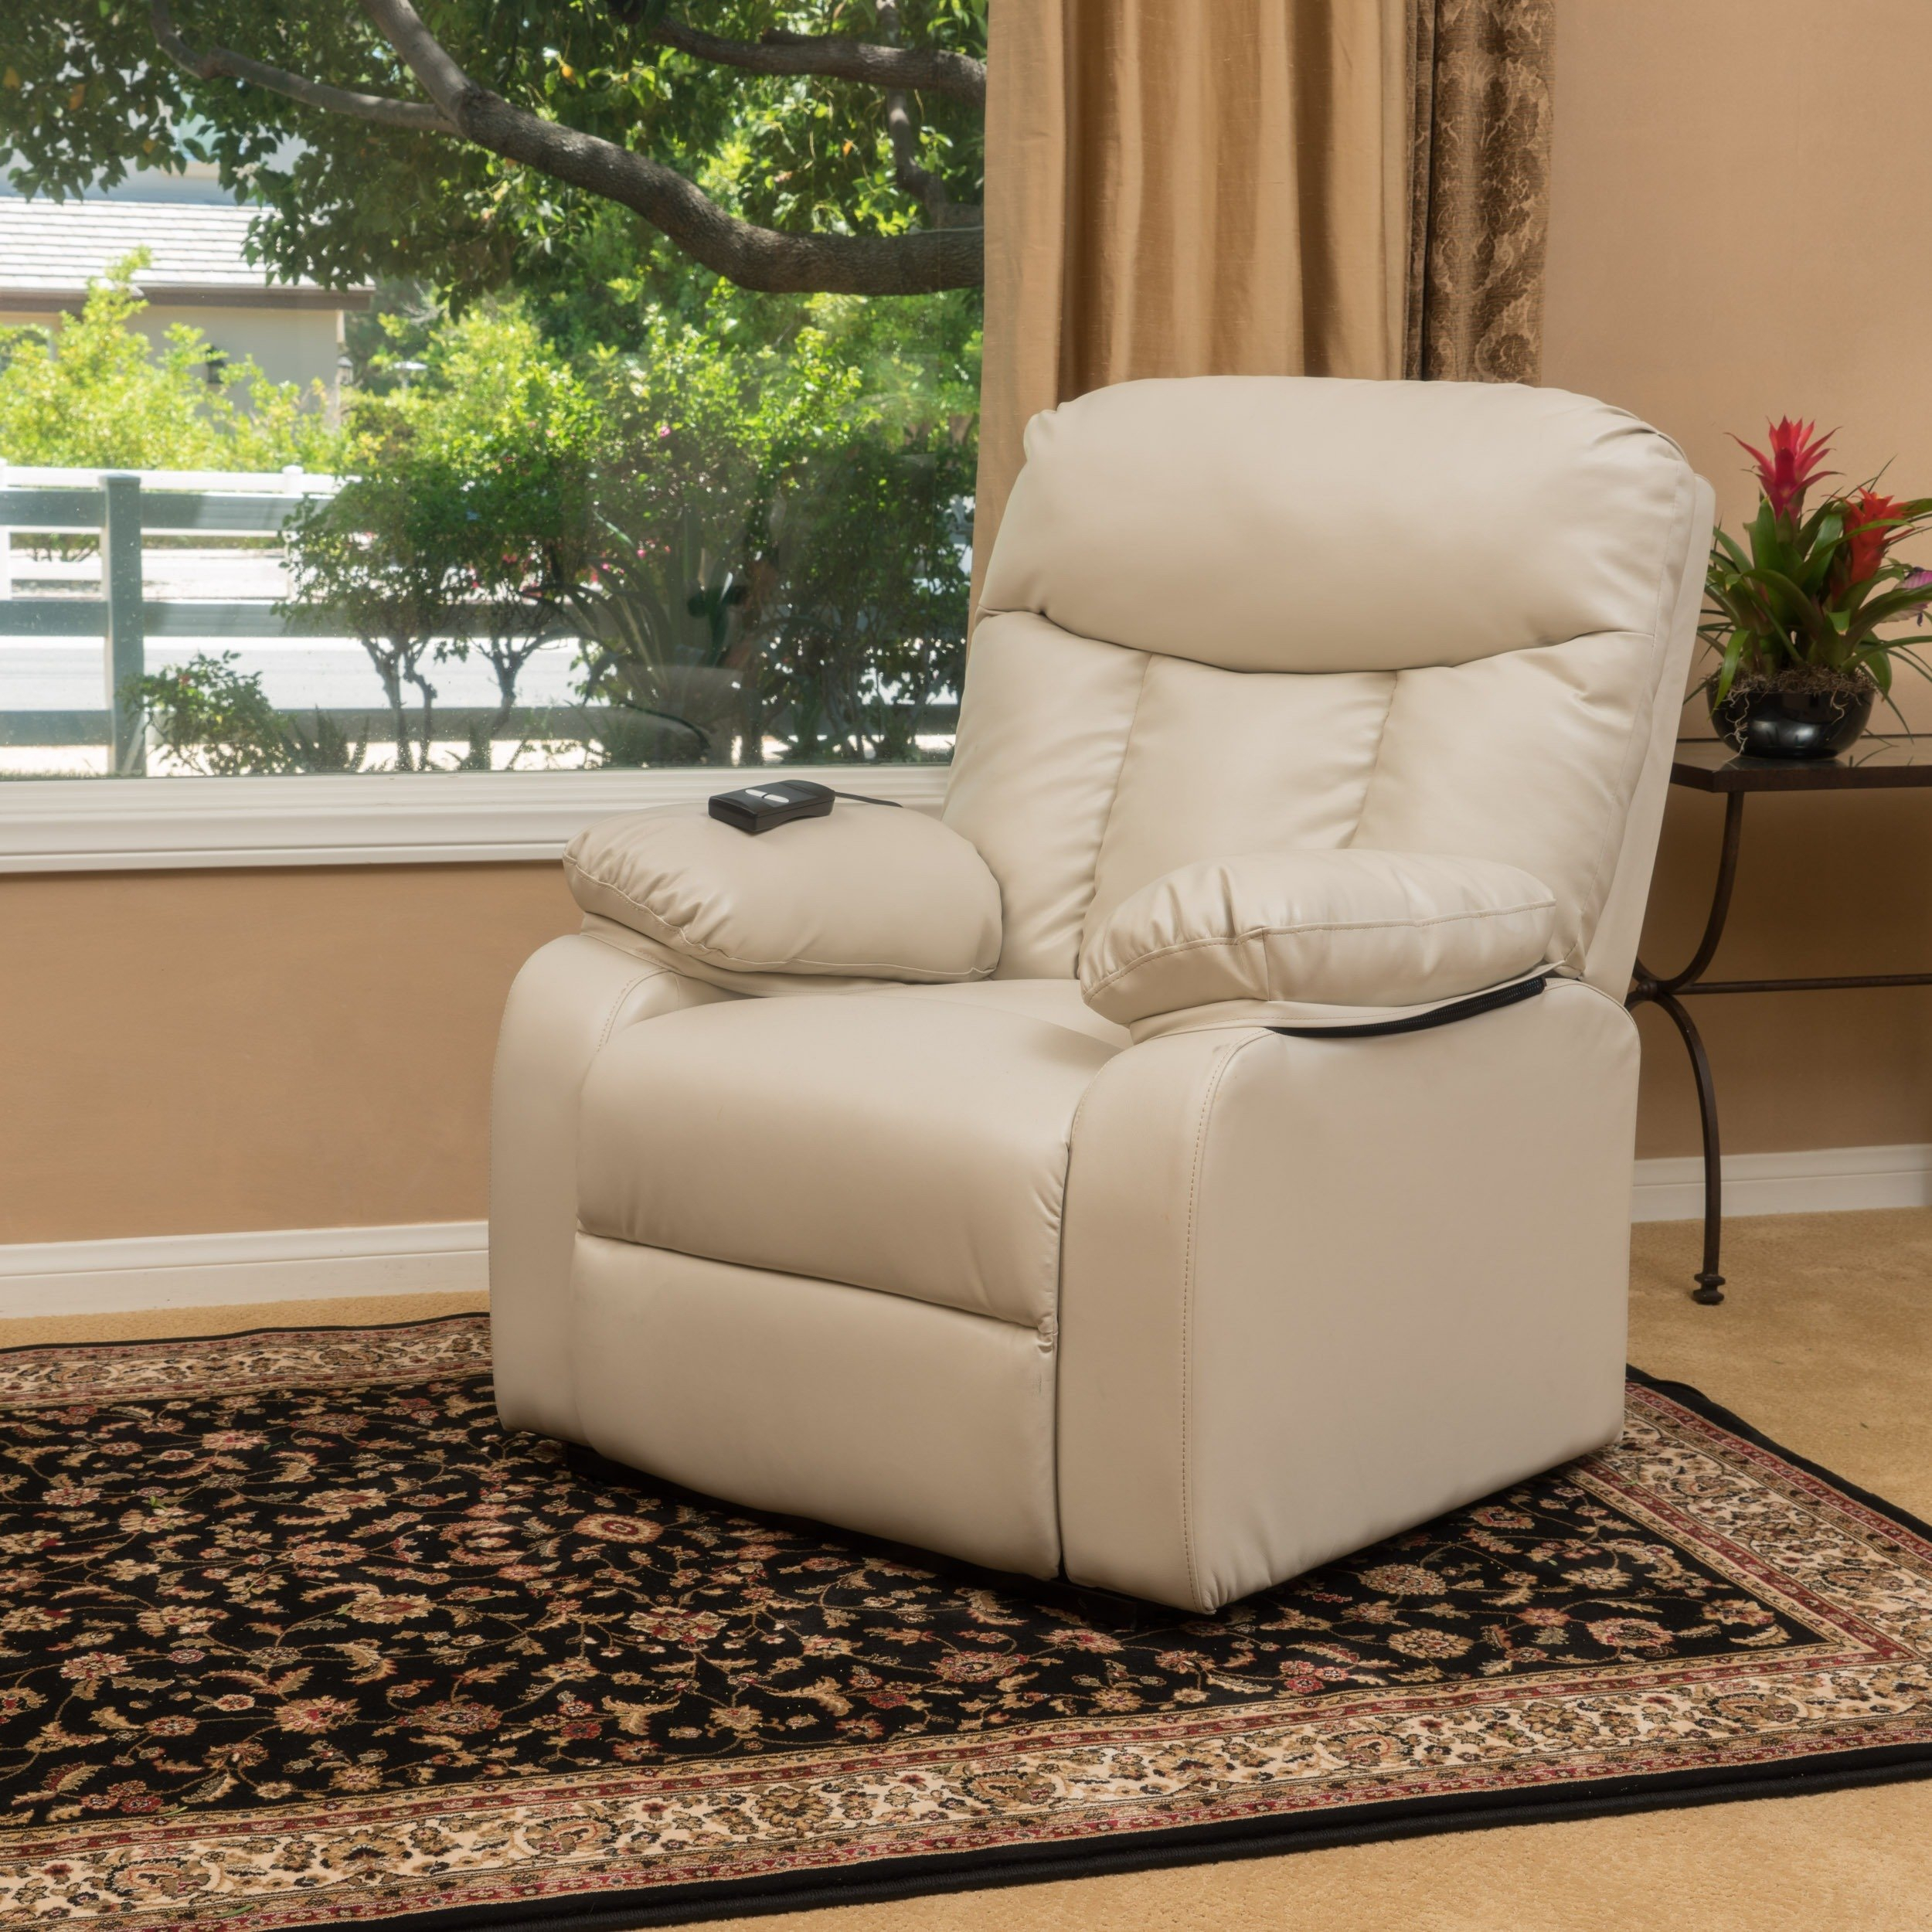 Buy Brown Christopher Knight Home Living Room Chairs Online At In Dale Iii Polyurethane Swivel Glider Recliners (Image 3 of 25)